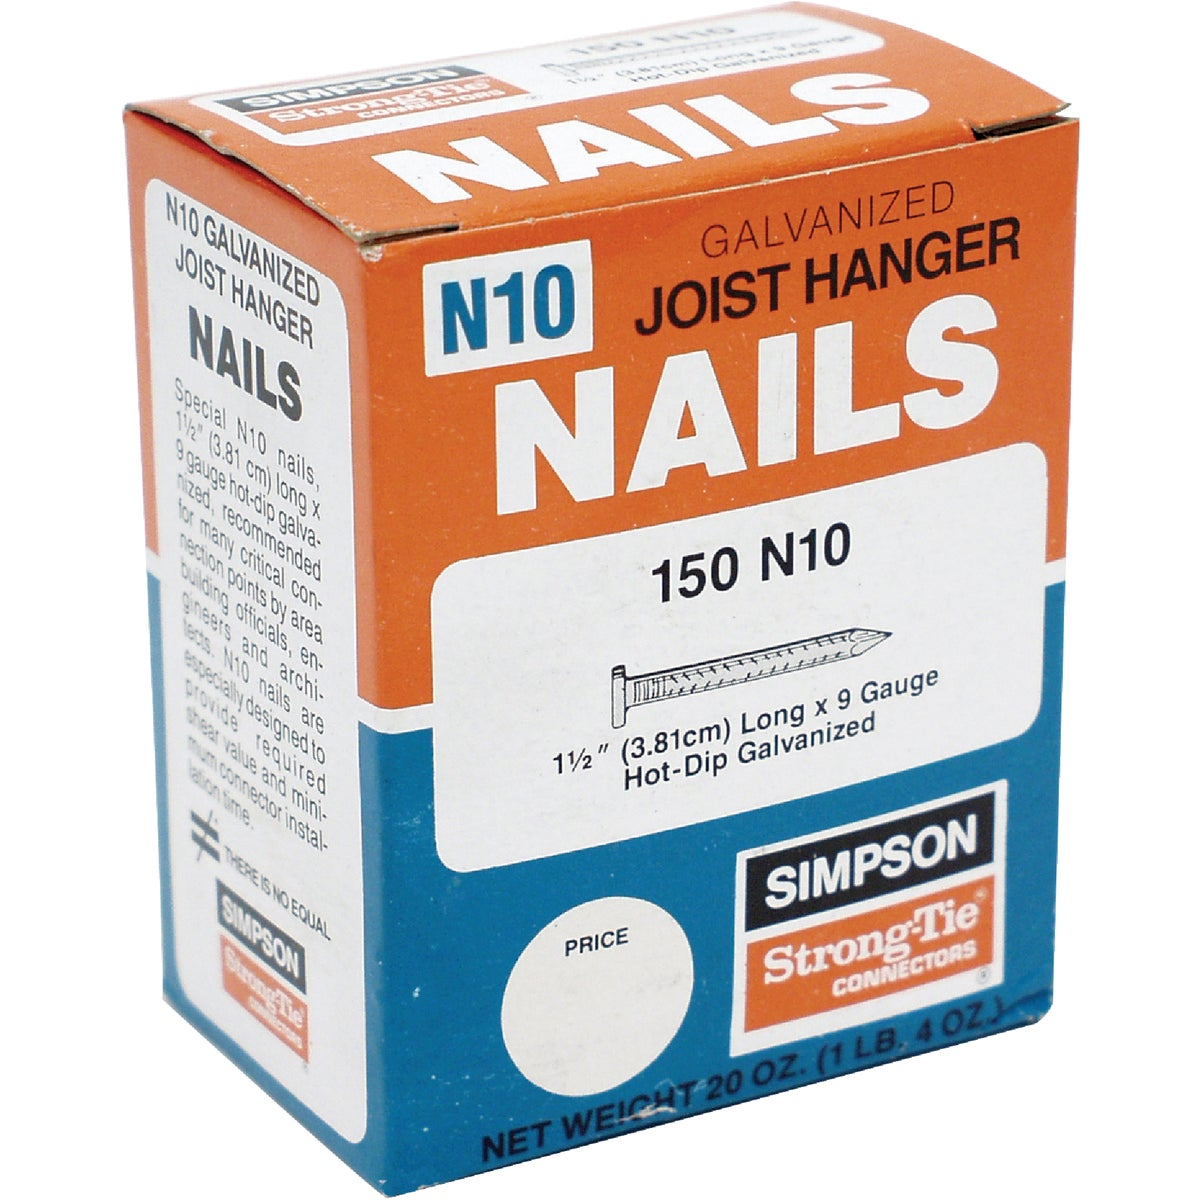 Simpson Strong-Tie 50LB 10DX1-1/2 HDG NAILS N10